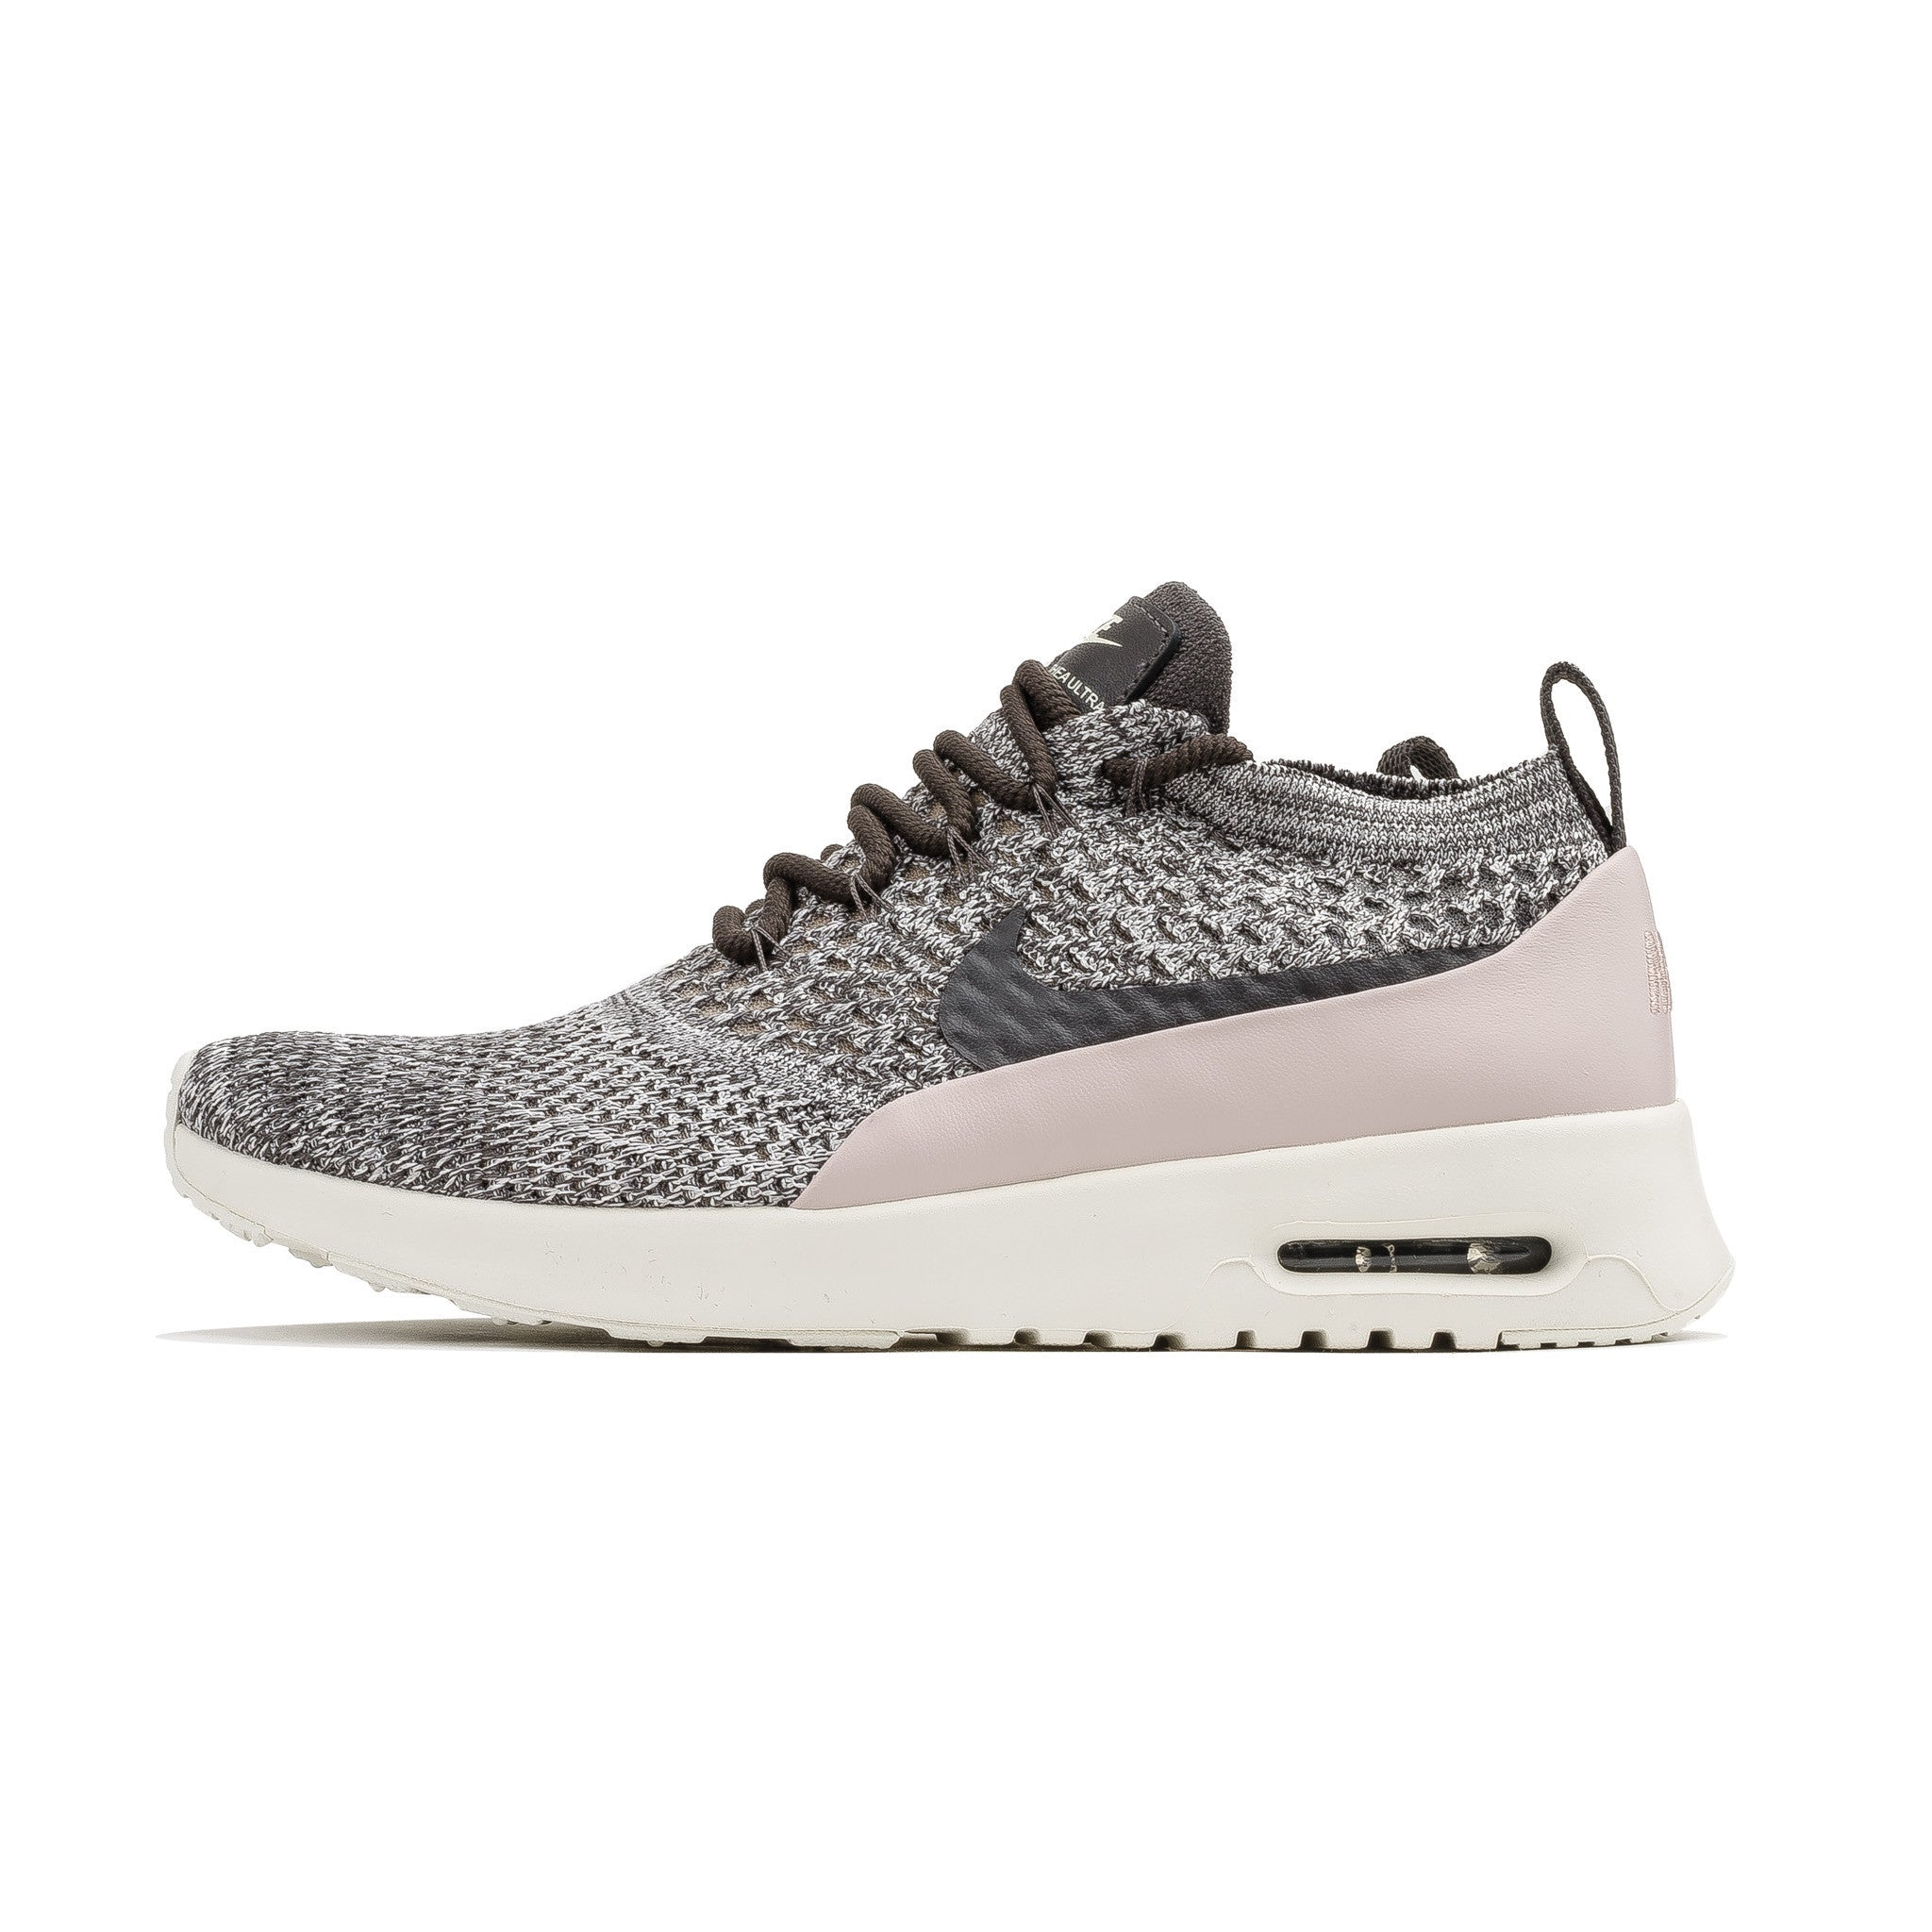 Wmns Air Max Thea Ultra FK 881175-003 Midnight Fog